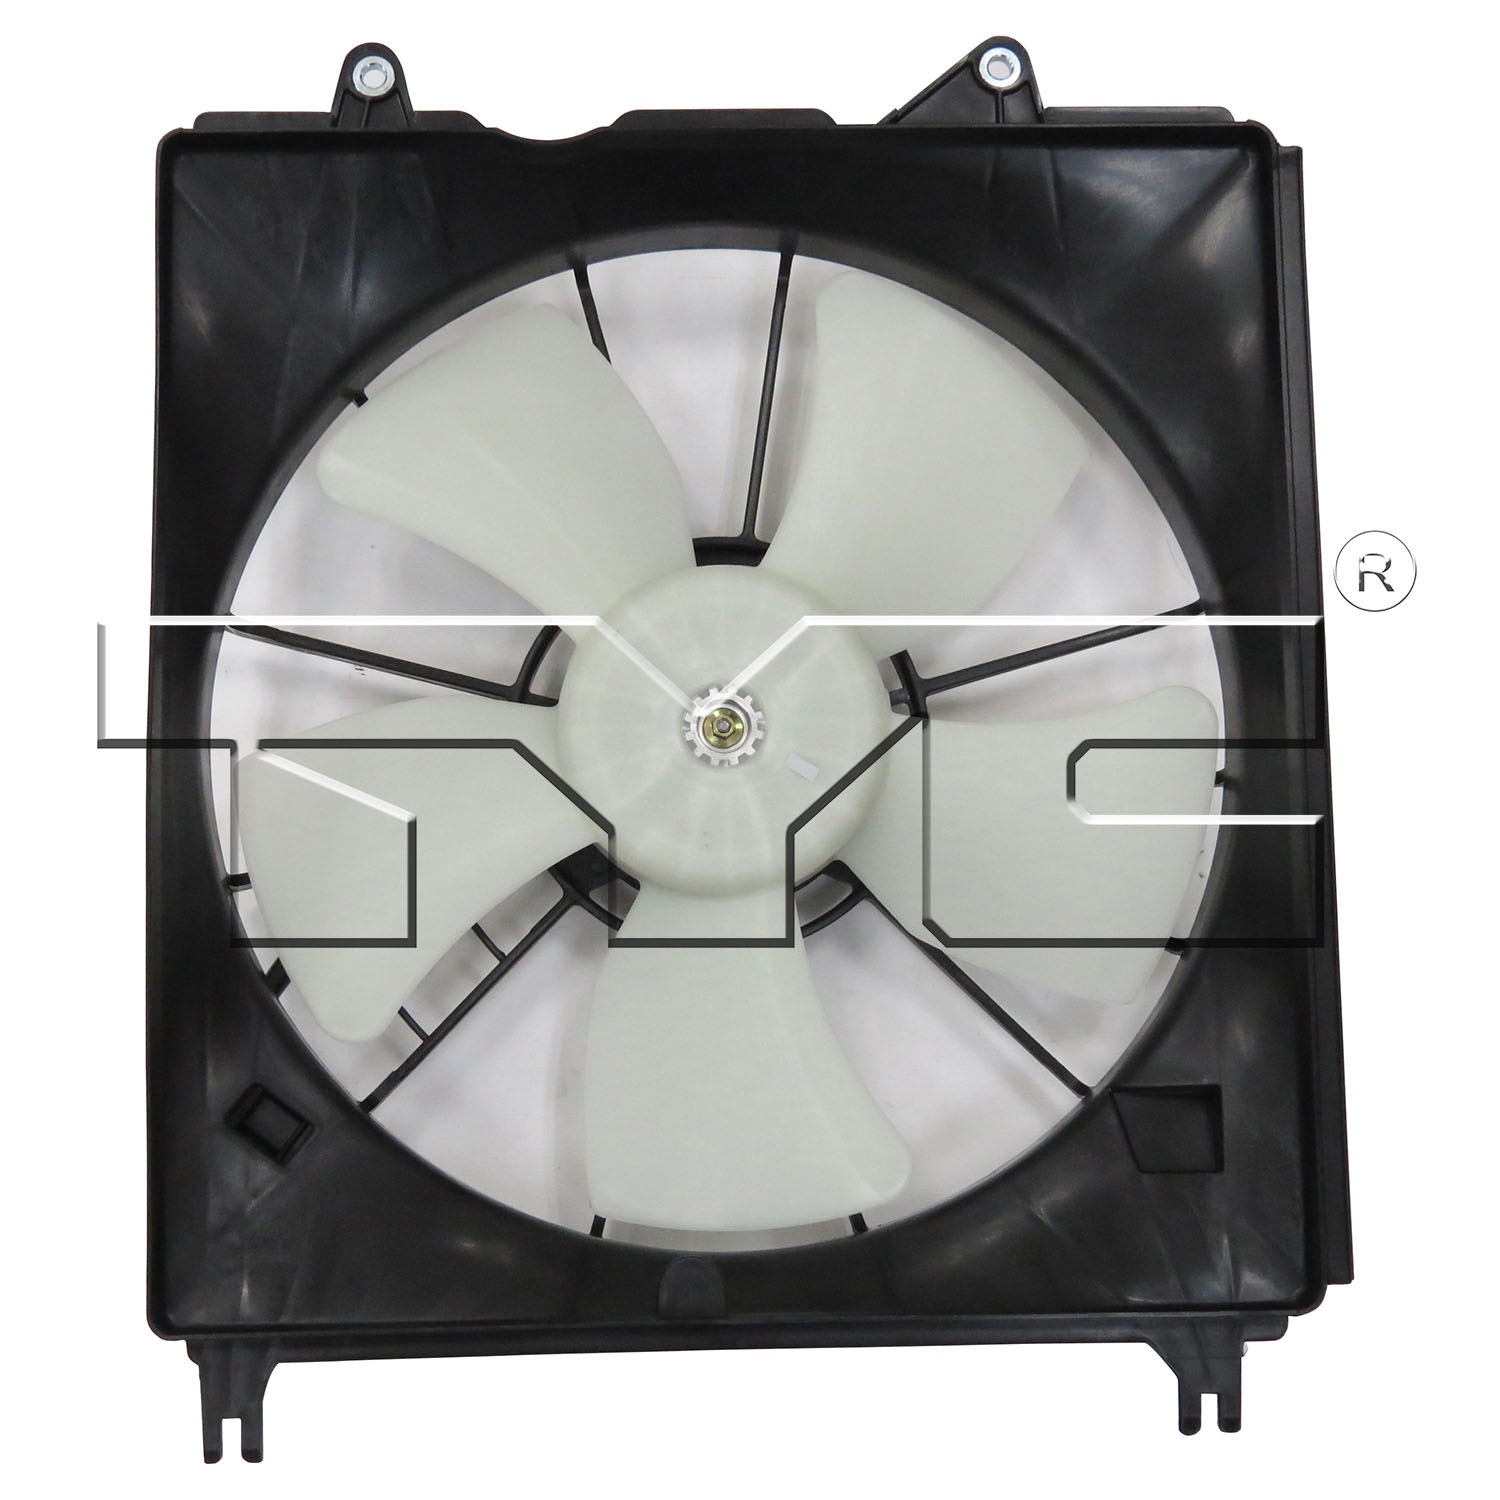 TYC 601510 Engine Cooling Fan Assembly for 2010-2012 Acura RDX AC3115121